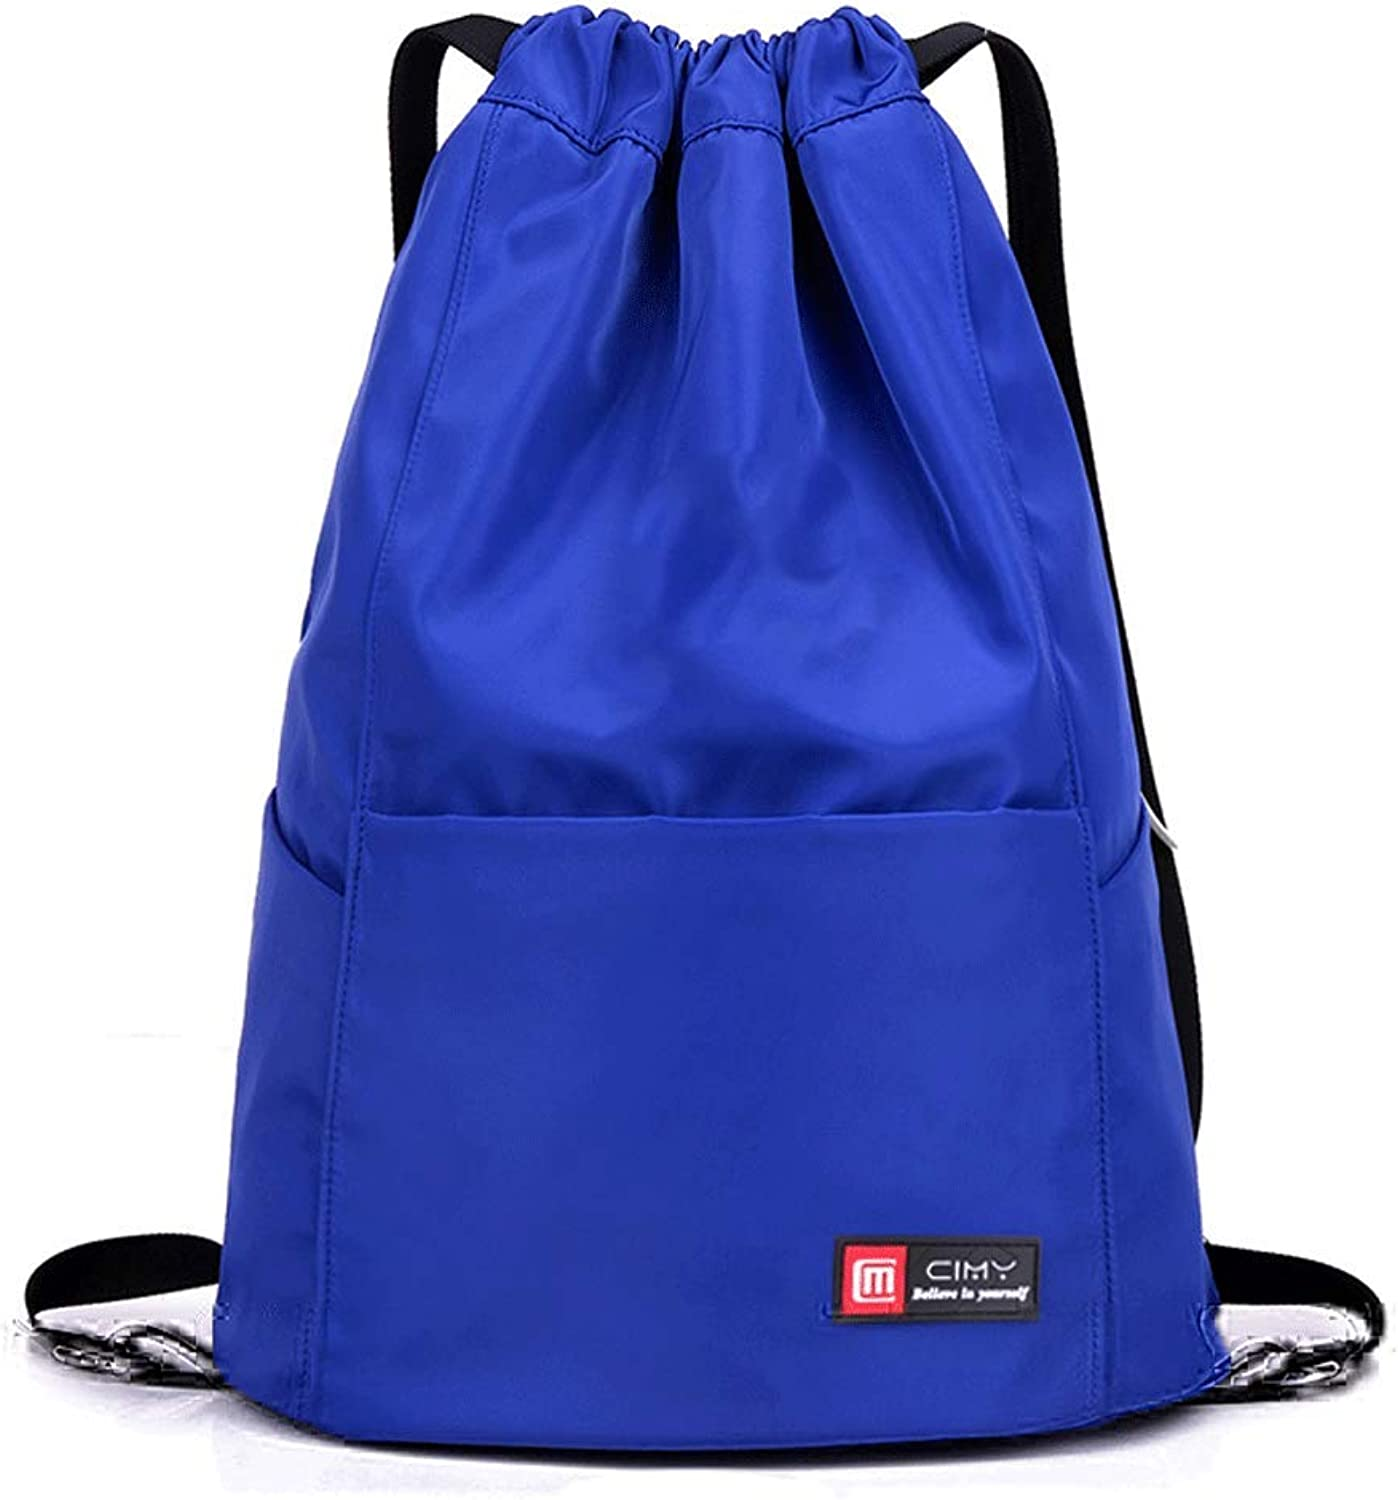 HS01 Unisex Sports Fitness Bag Simple Outdoor Travel Backpack Large Capacity Drawstring Shoulder Storage Bag (color   bluee)